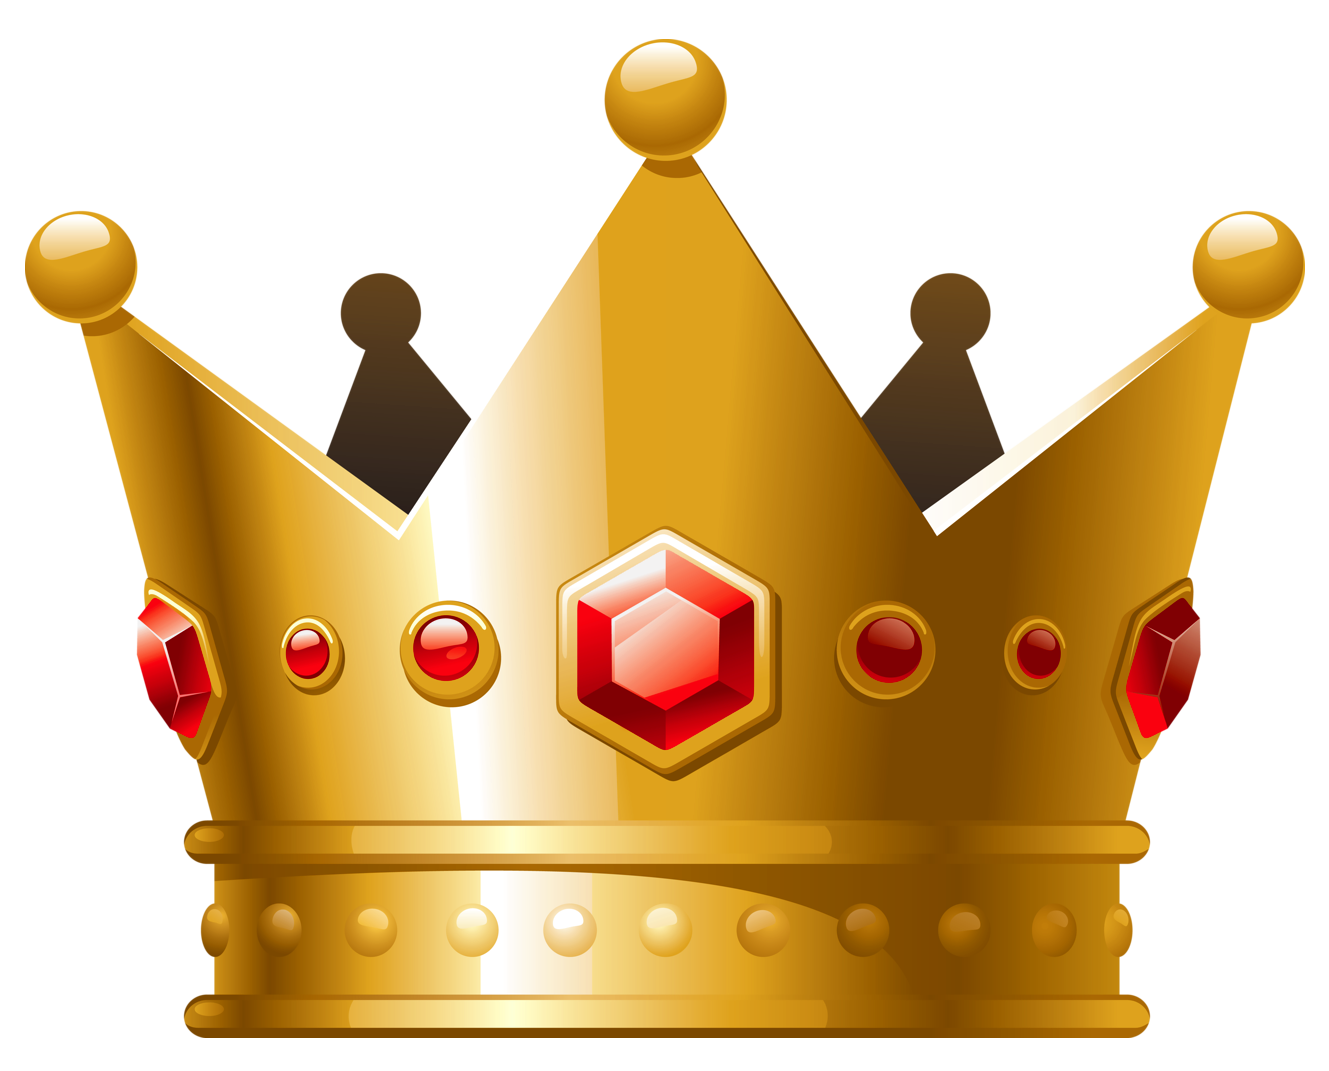 Background clipart invisible. Crown transparent image with